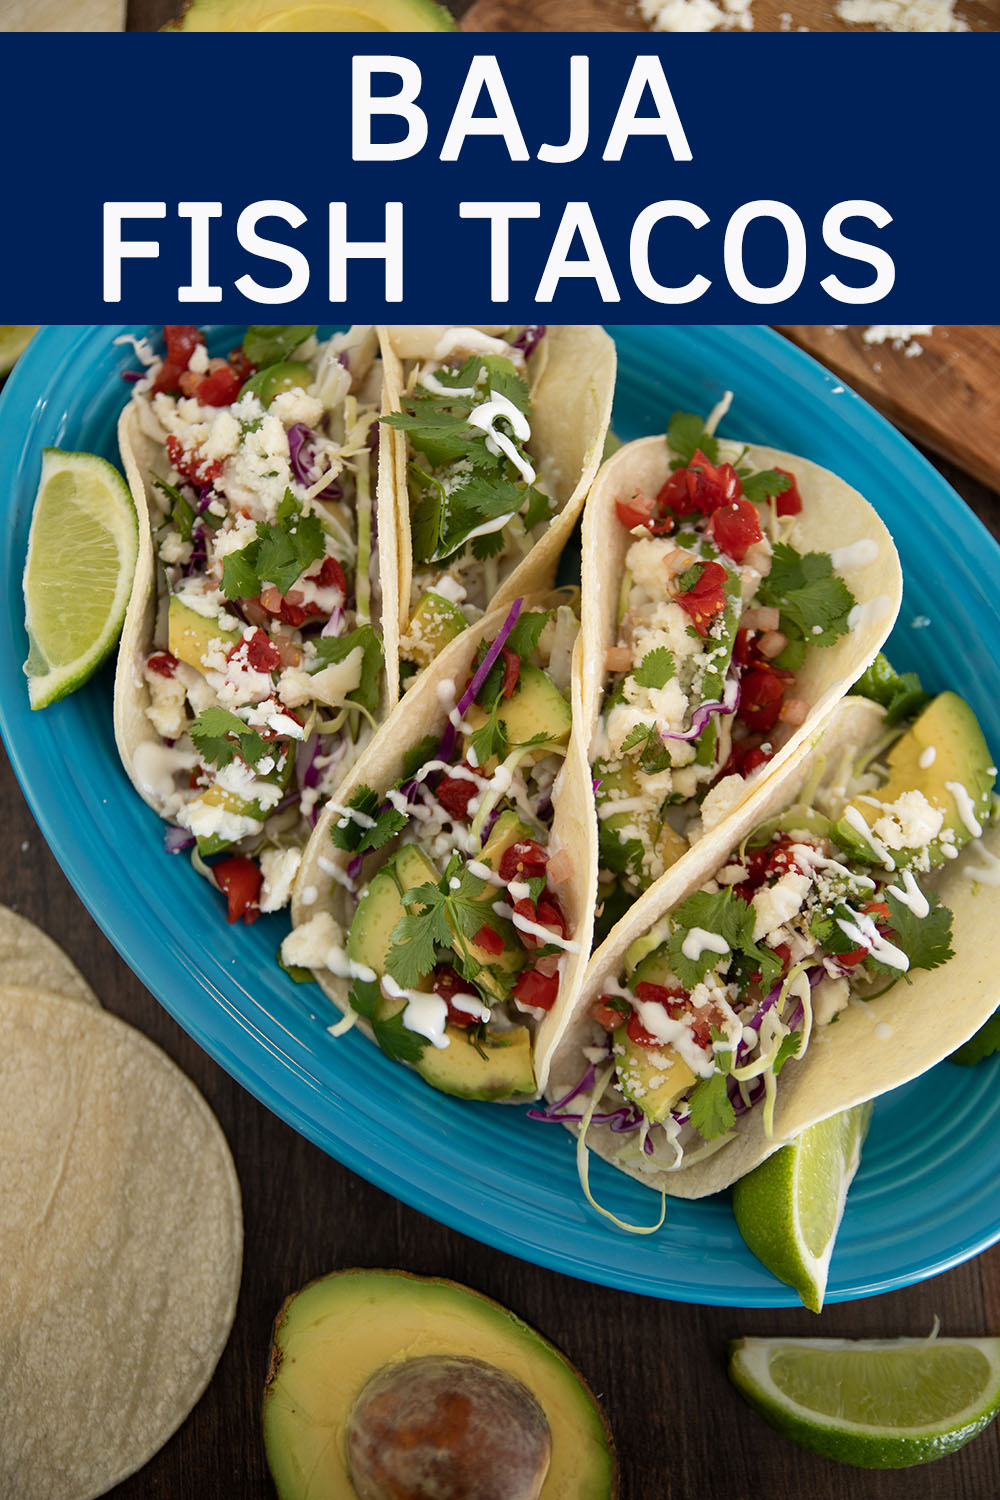 Stunning blue platter of healthy fish tacos made with cod.